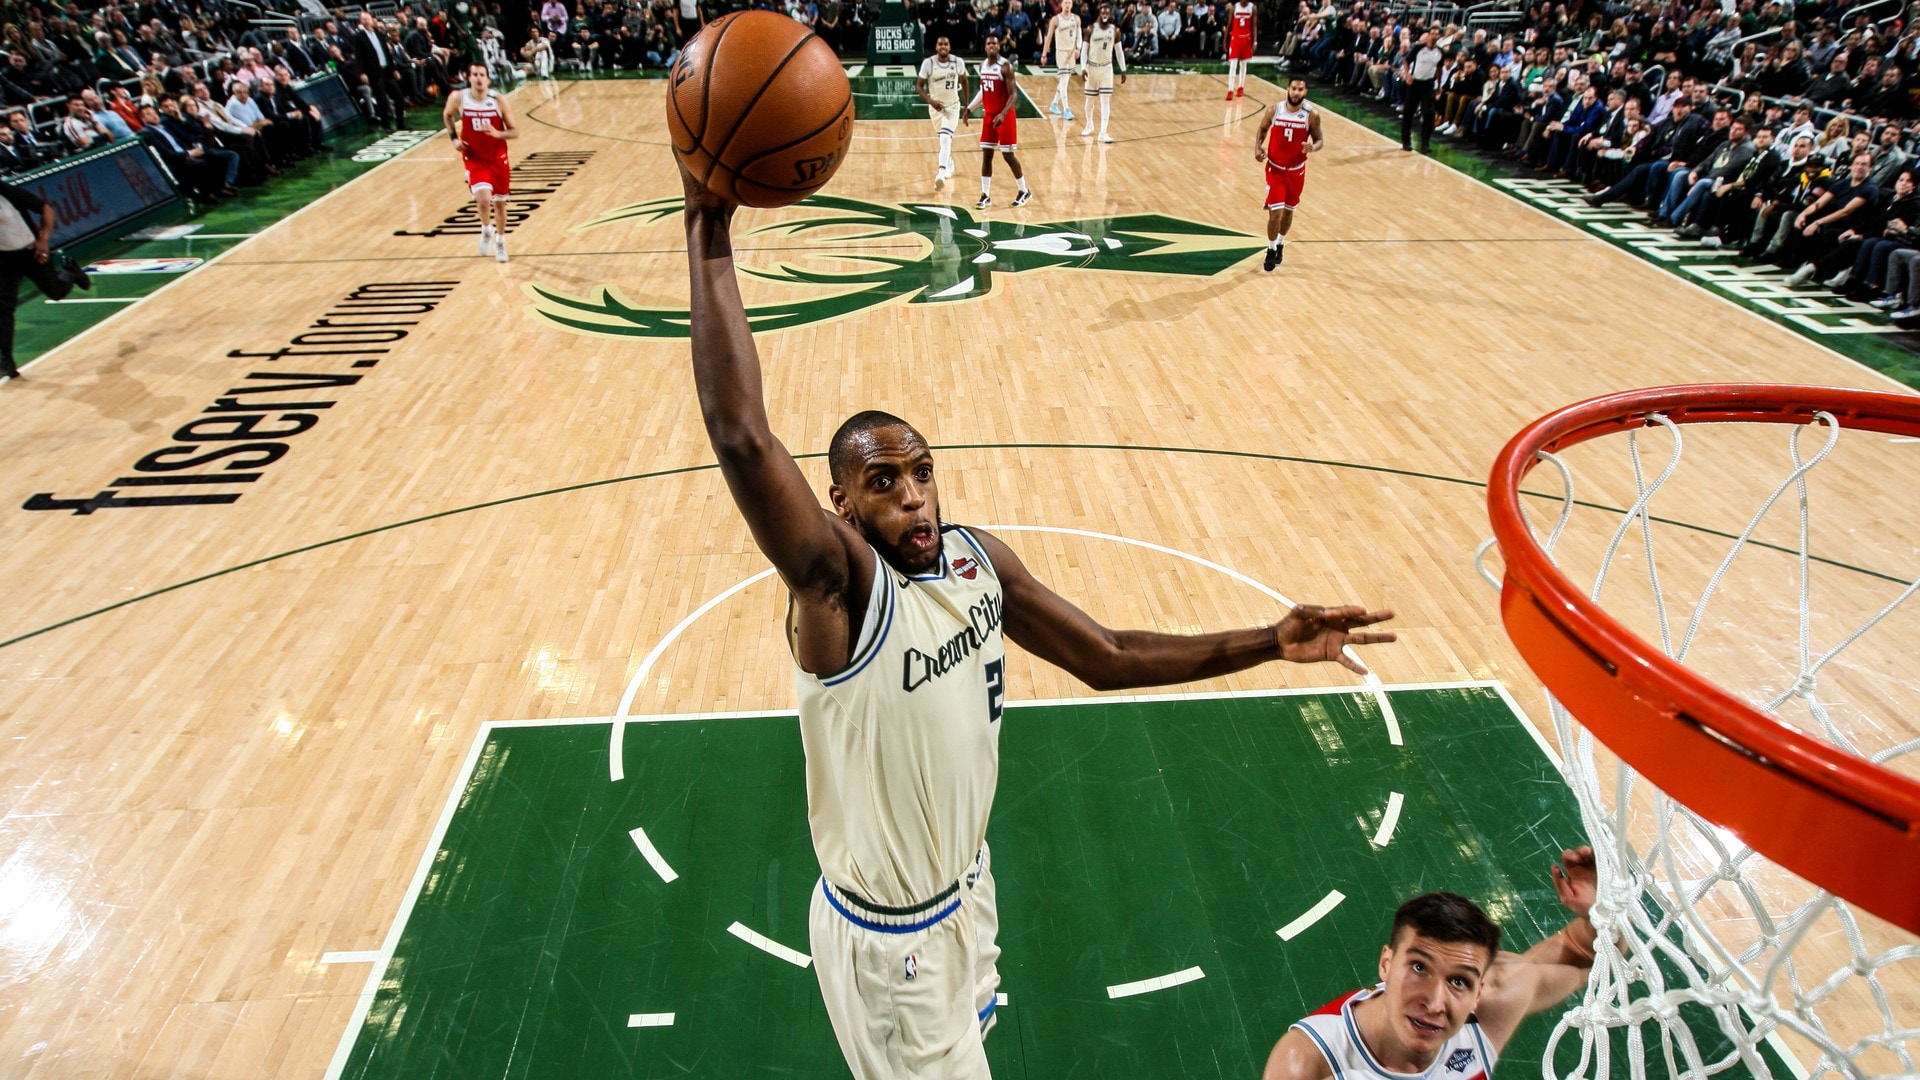 Khris Middleton Top 5 Plays Of 2019-20